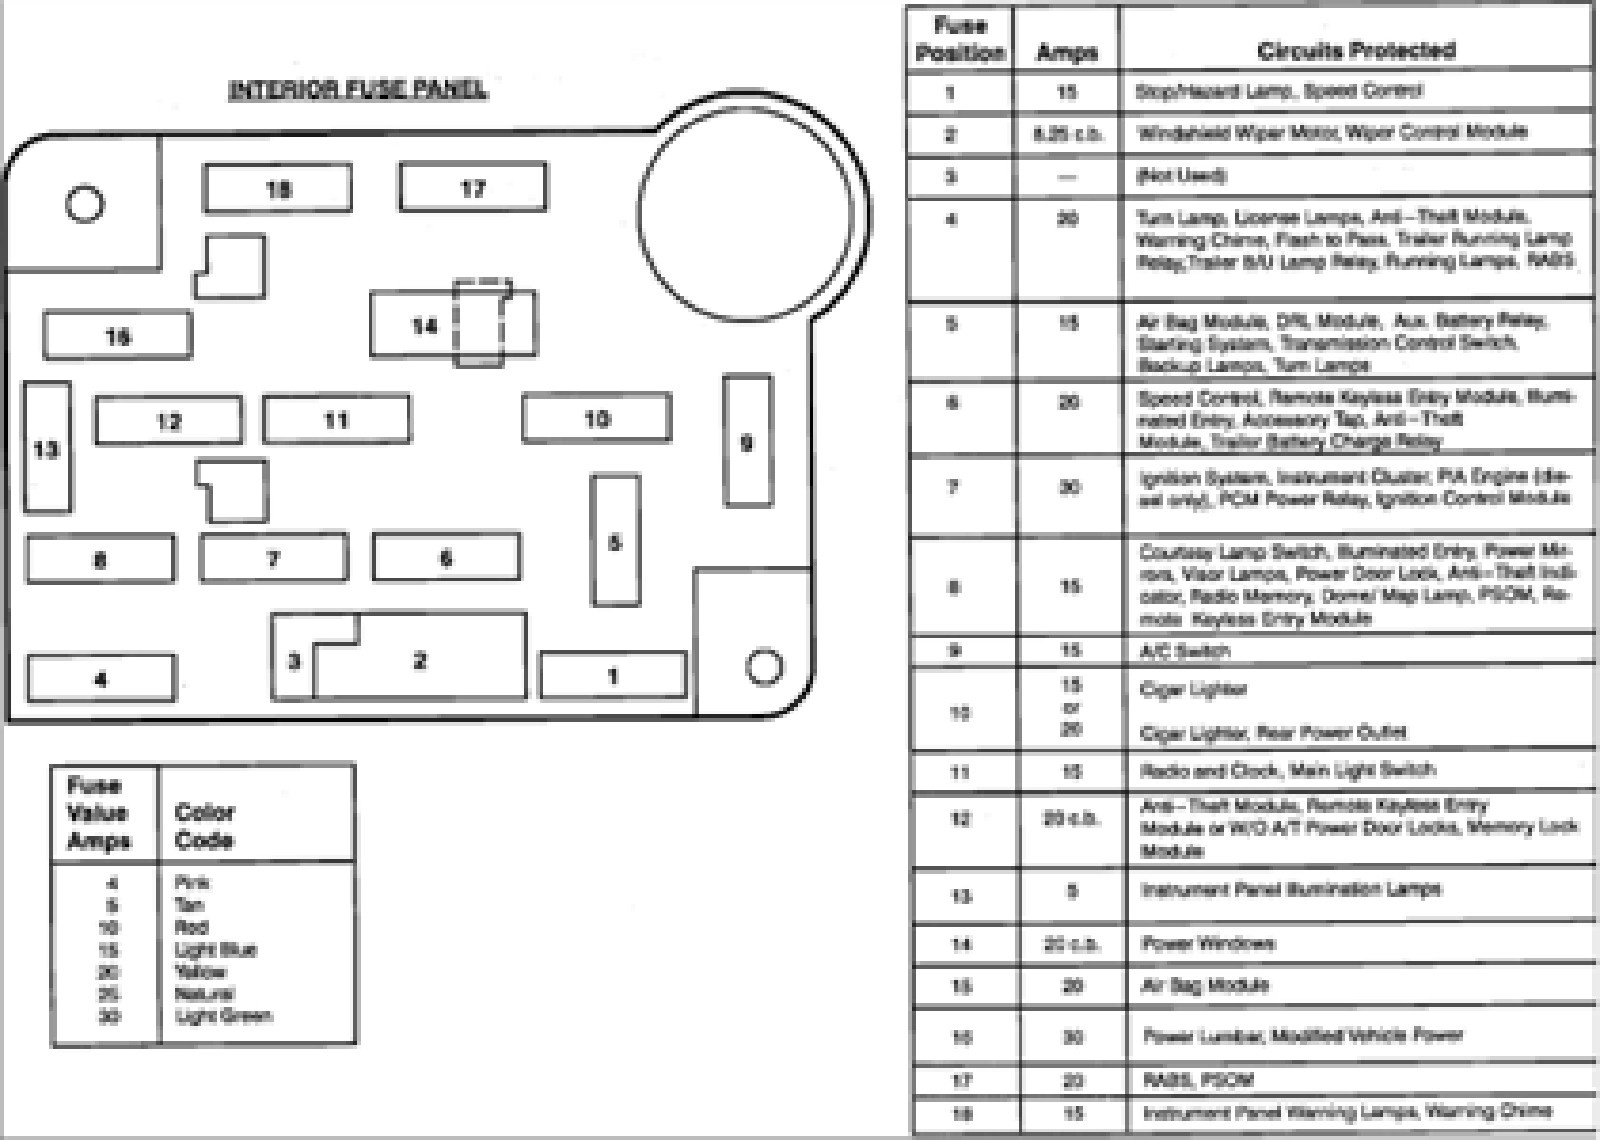 pic 8862473225641007897 1600x1200 ford e 150 questions fuse diagram for a 1993 ford econoline van ford e 150 fuse box diagram at webbmarketing.co